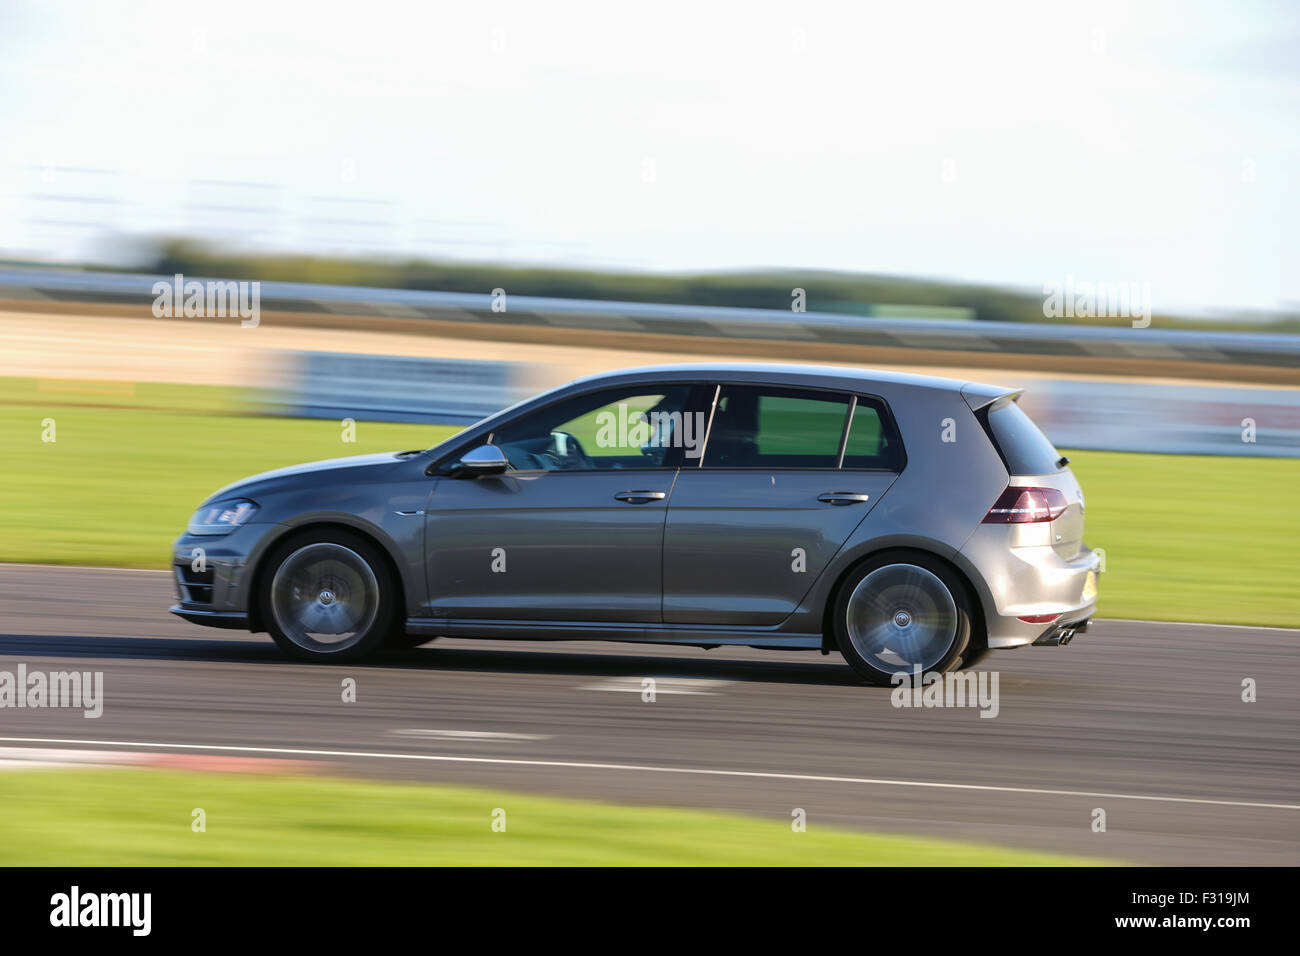 A VW Golf at Castle Combe Circuit - Stock Image